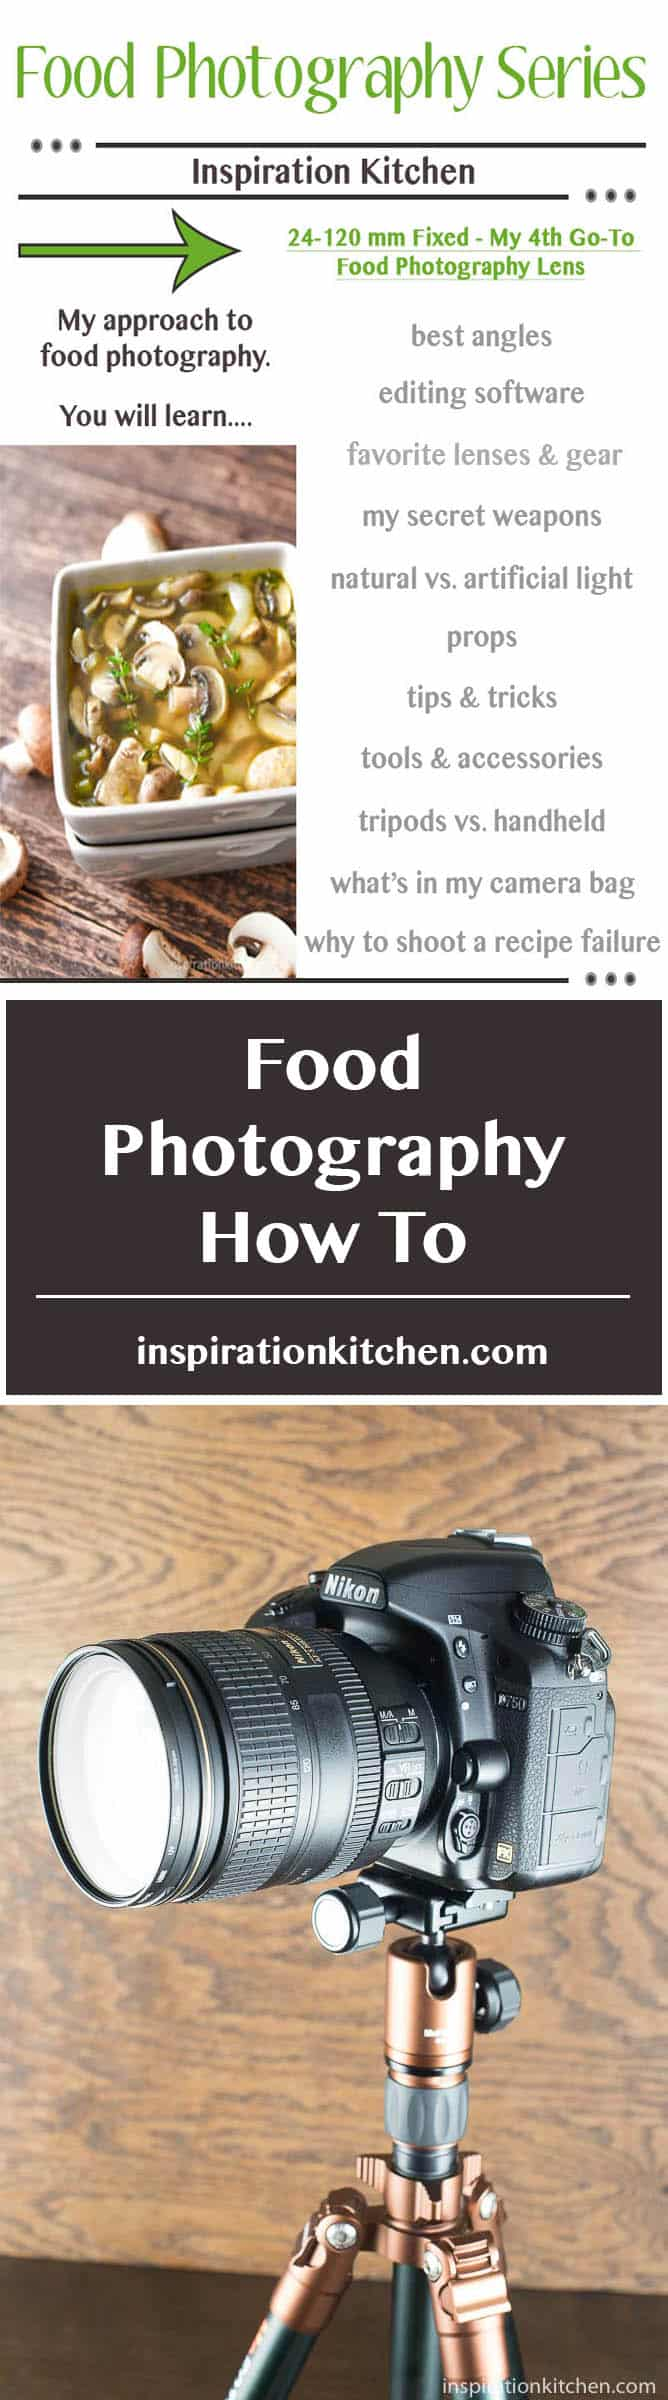 My 4th Favorite Food Photography Lens - 24-120mm Fixed - inspirationkitchen.com